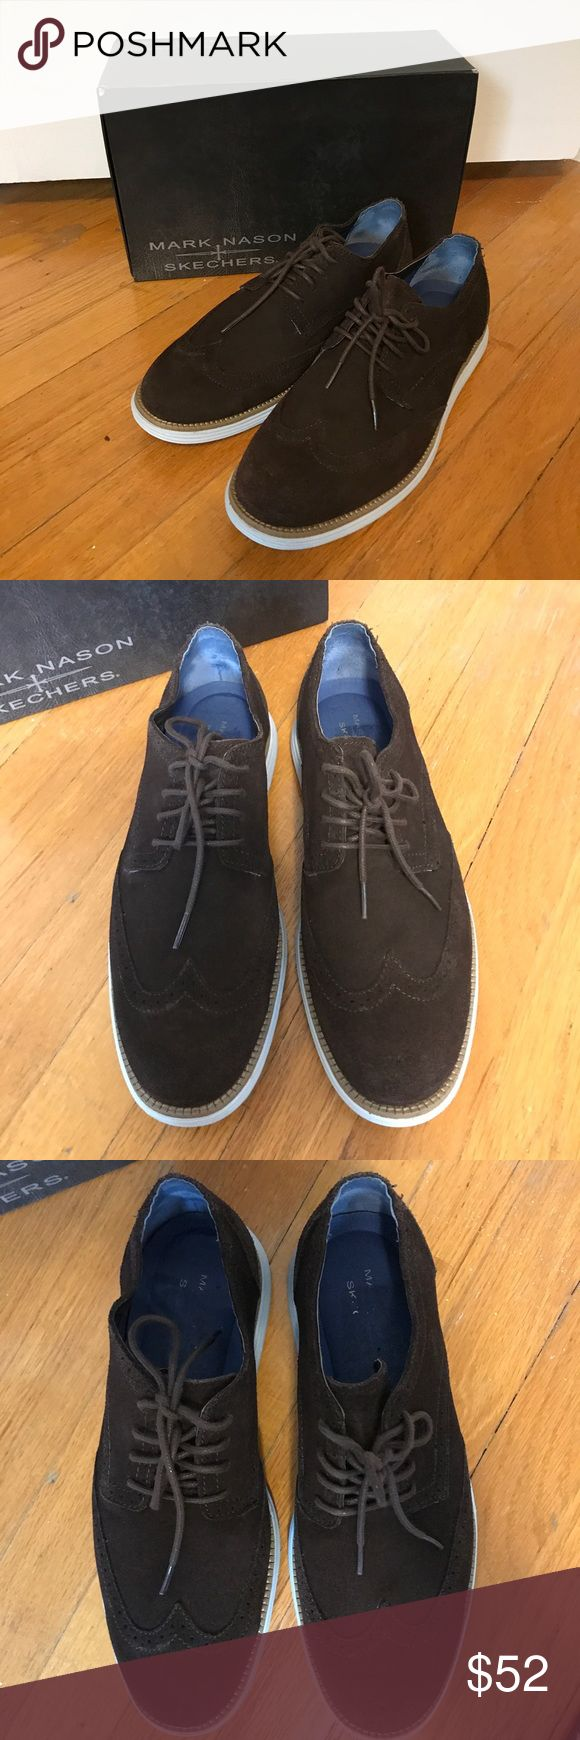 Mark Nason for Skechers Men's Wingtip Oxford Shoes Soft leather balance upper with lightweight bottoms- overall a lightweight and comfortable dress shoe. Perfect for everyday or going out. Brown top with a light blue bottom. Men's size 9. In great condition. Mark Nason Shoes Oxfords & Derbys